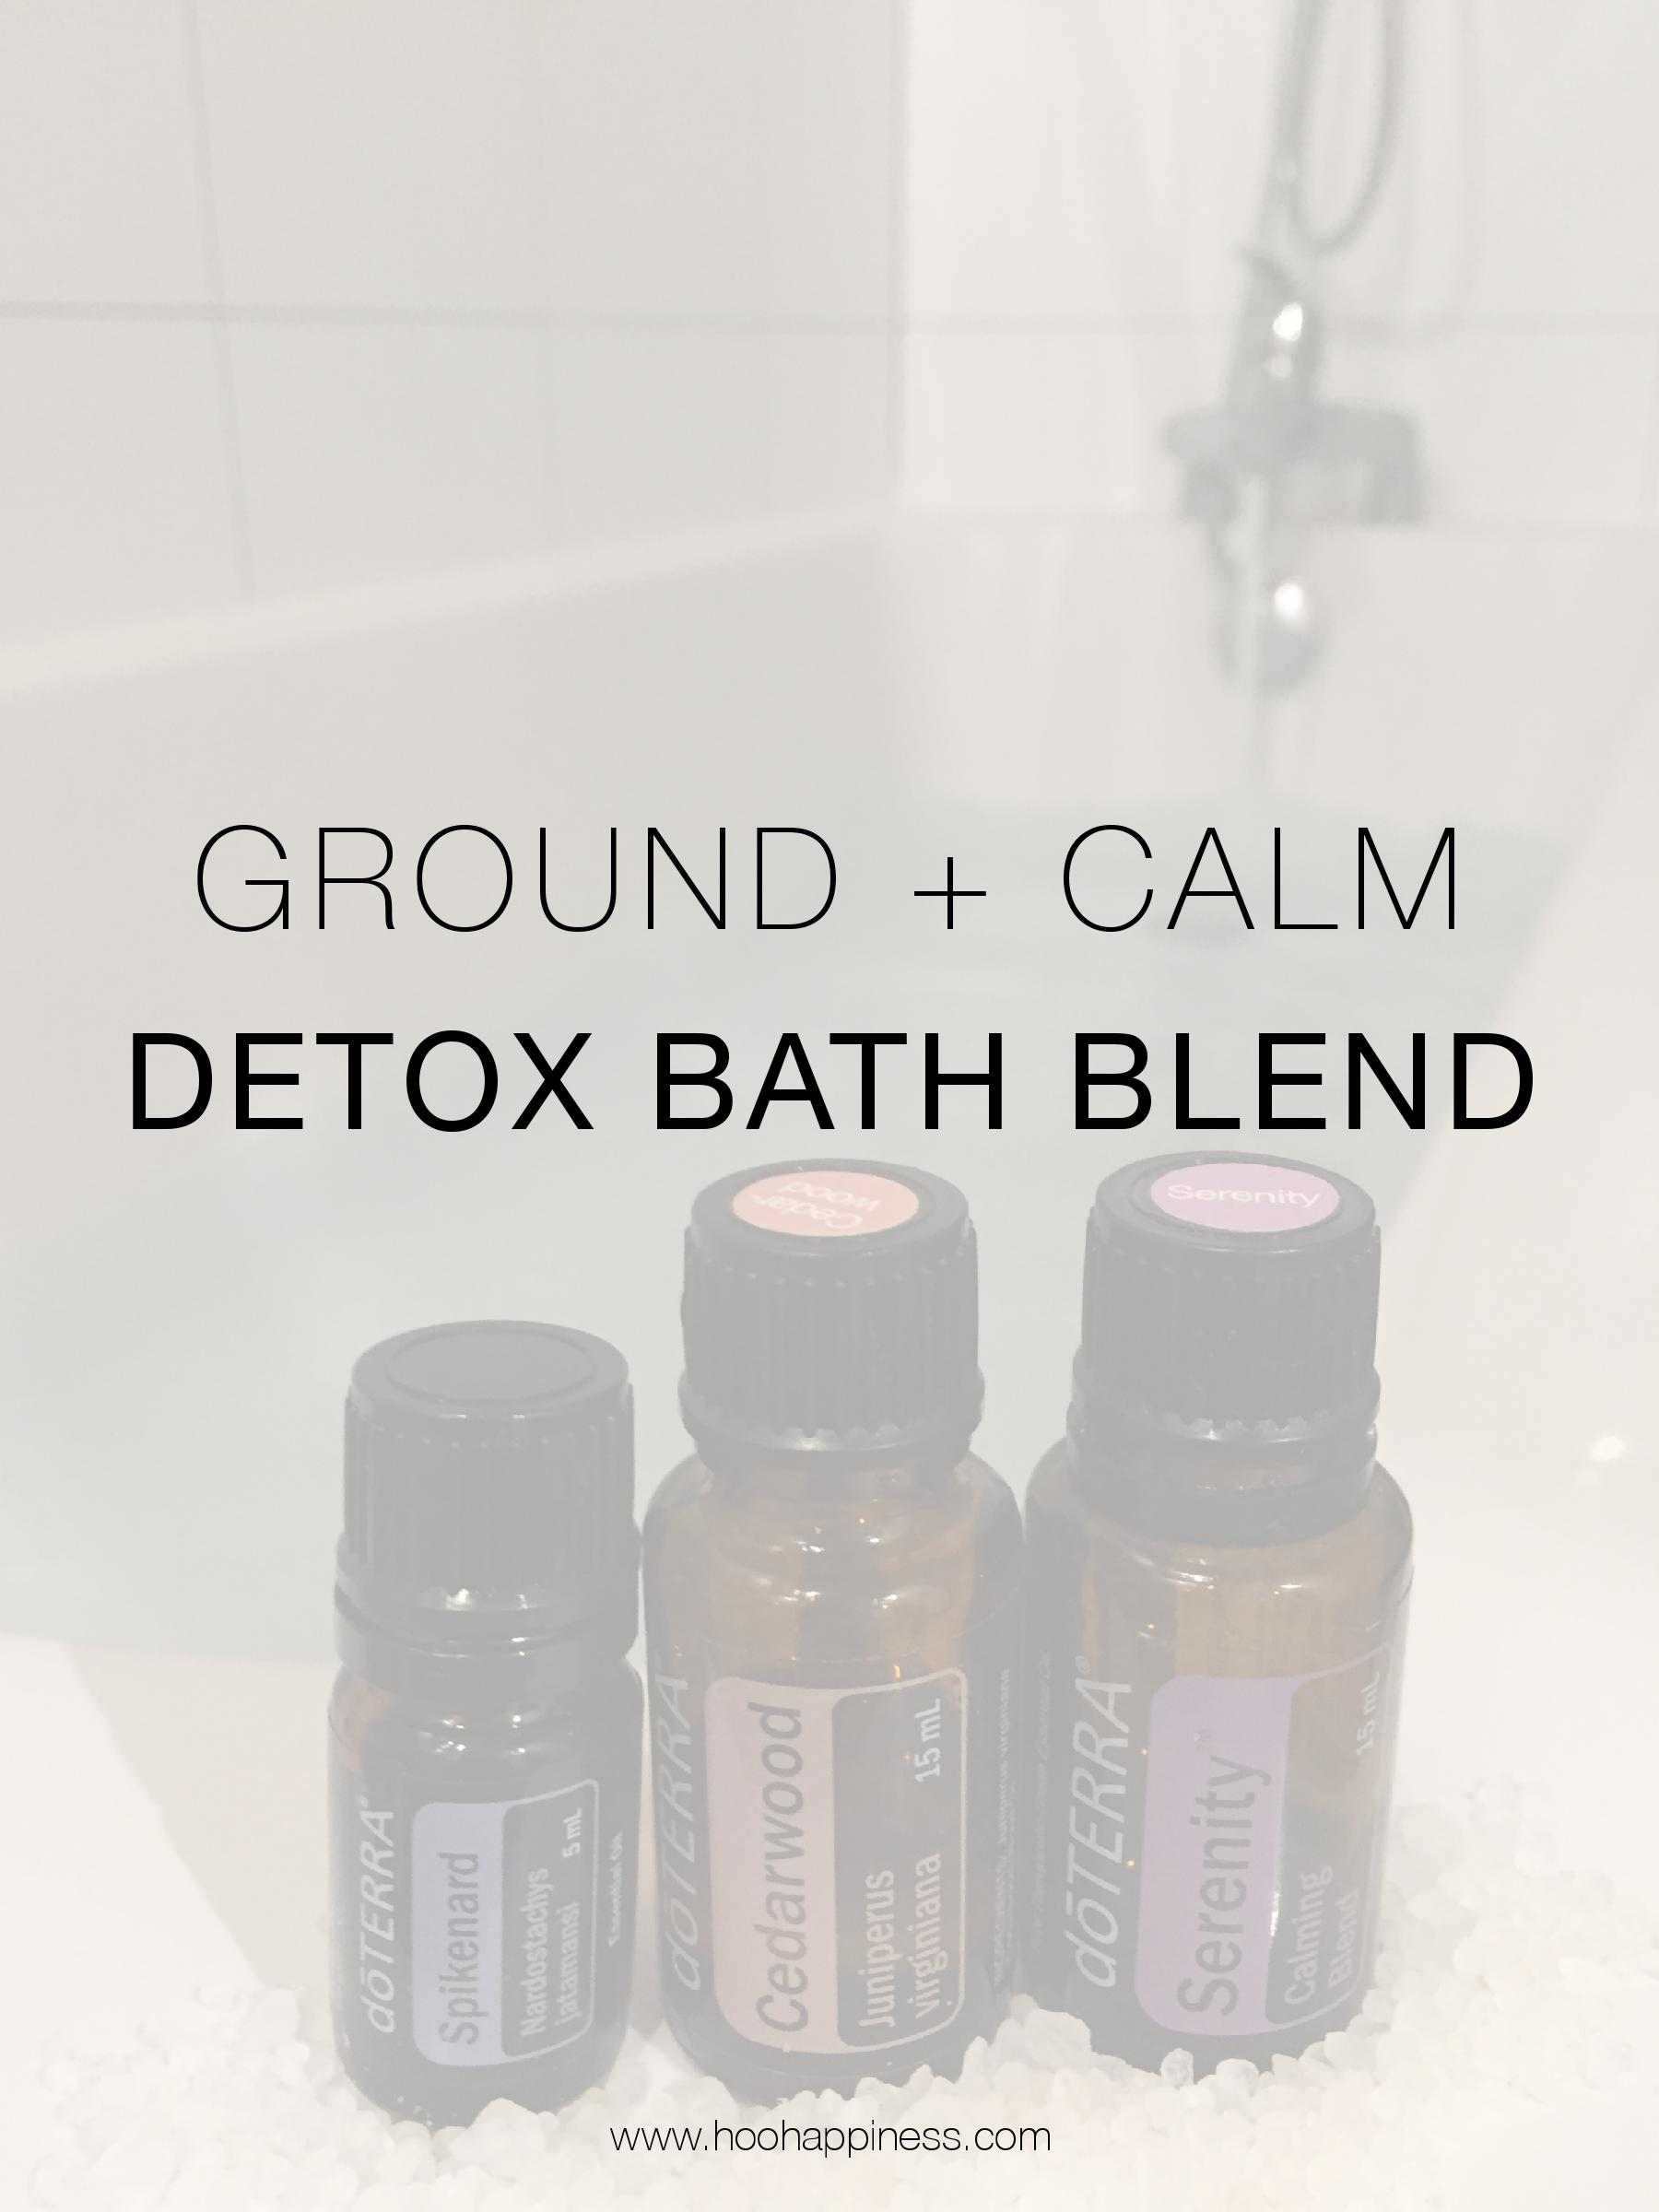 Calming & Grounding Detox Bath